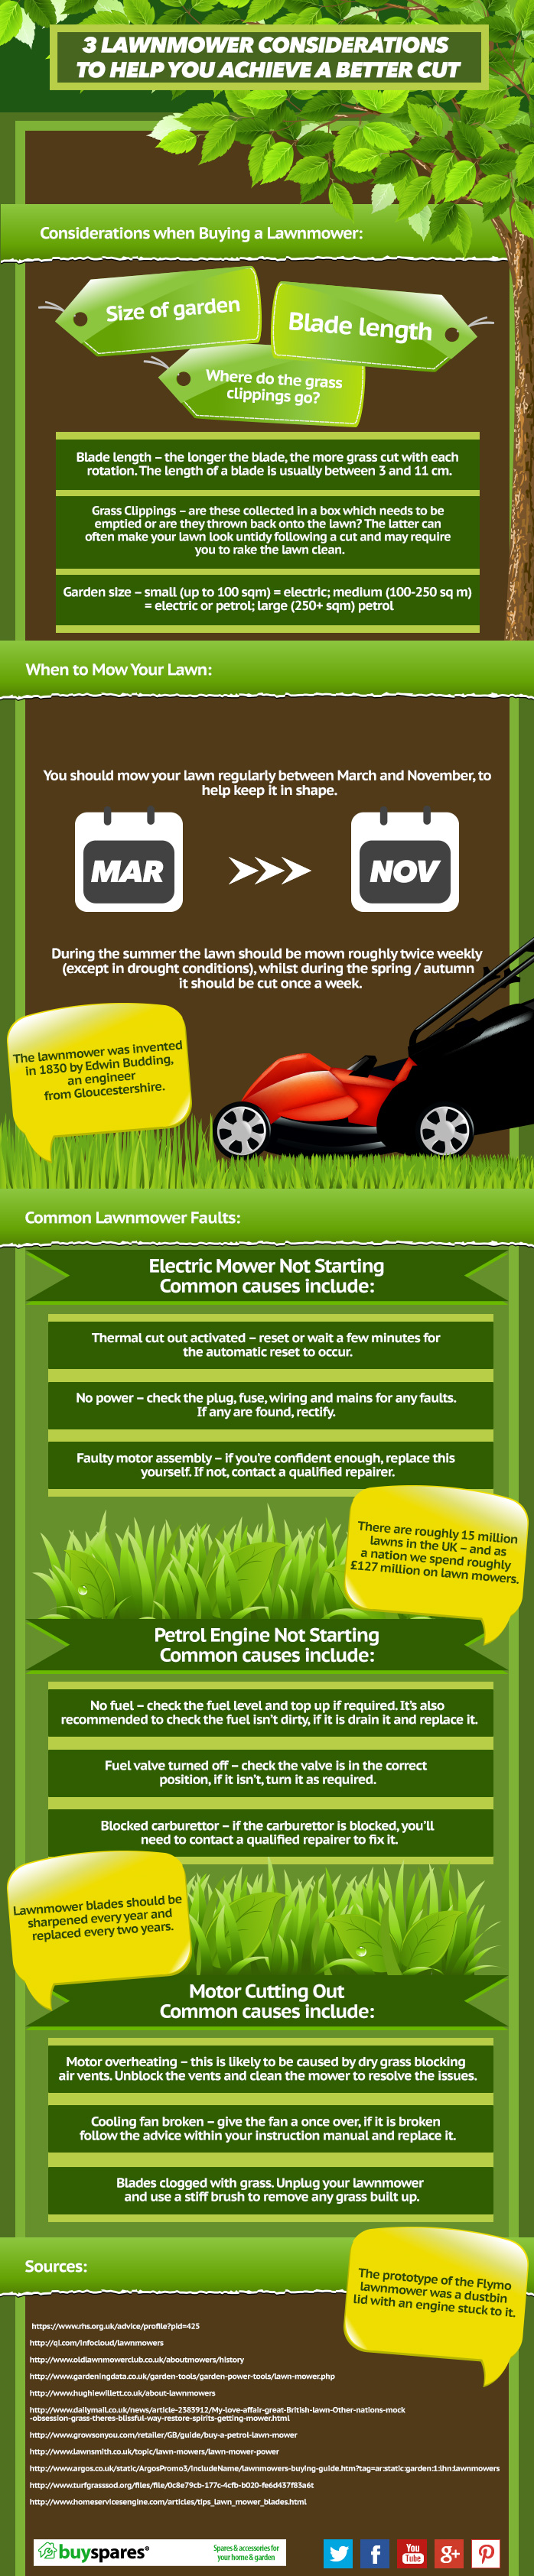 3 Considerations for Buying a Lawnmower